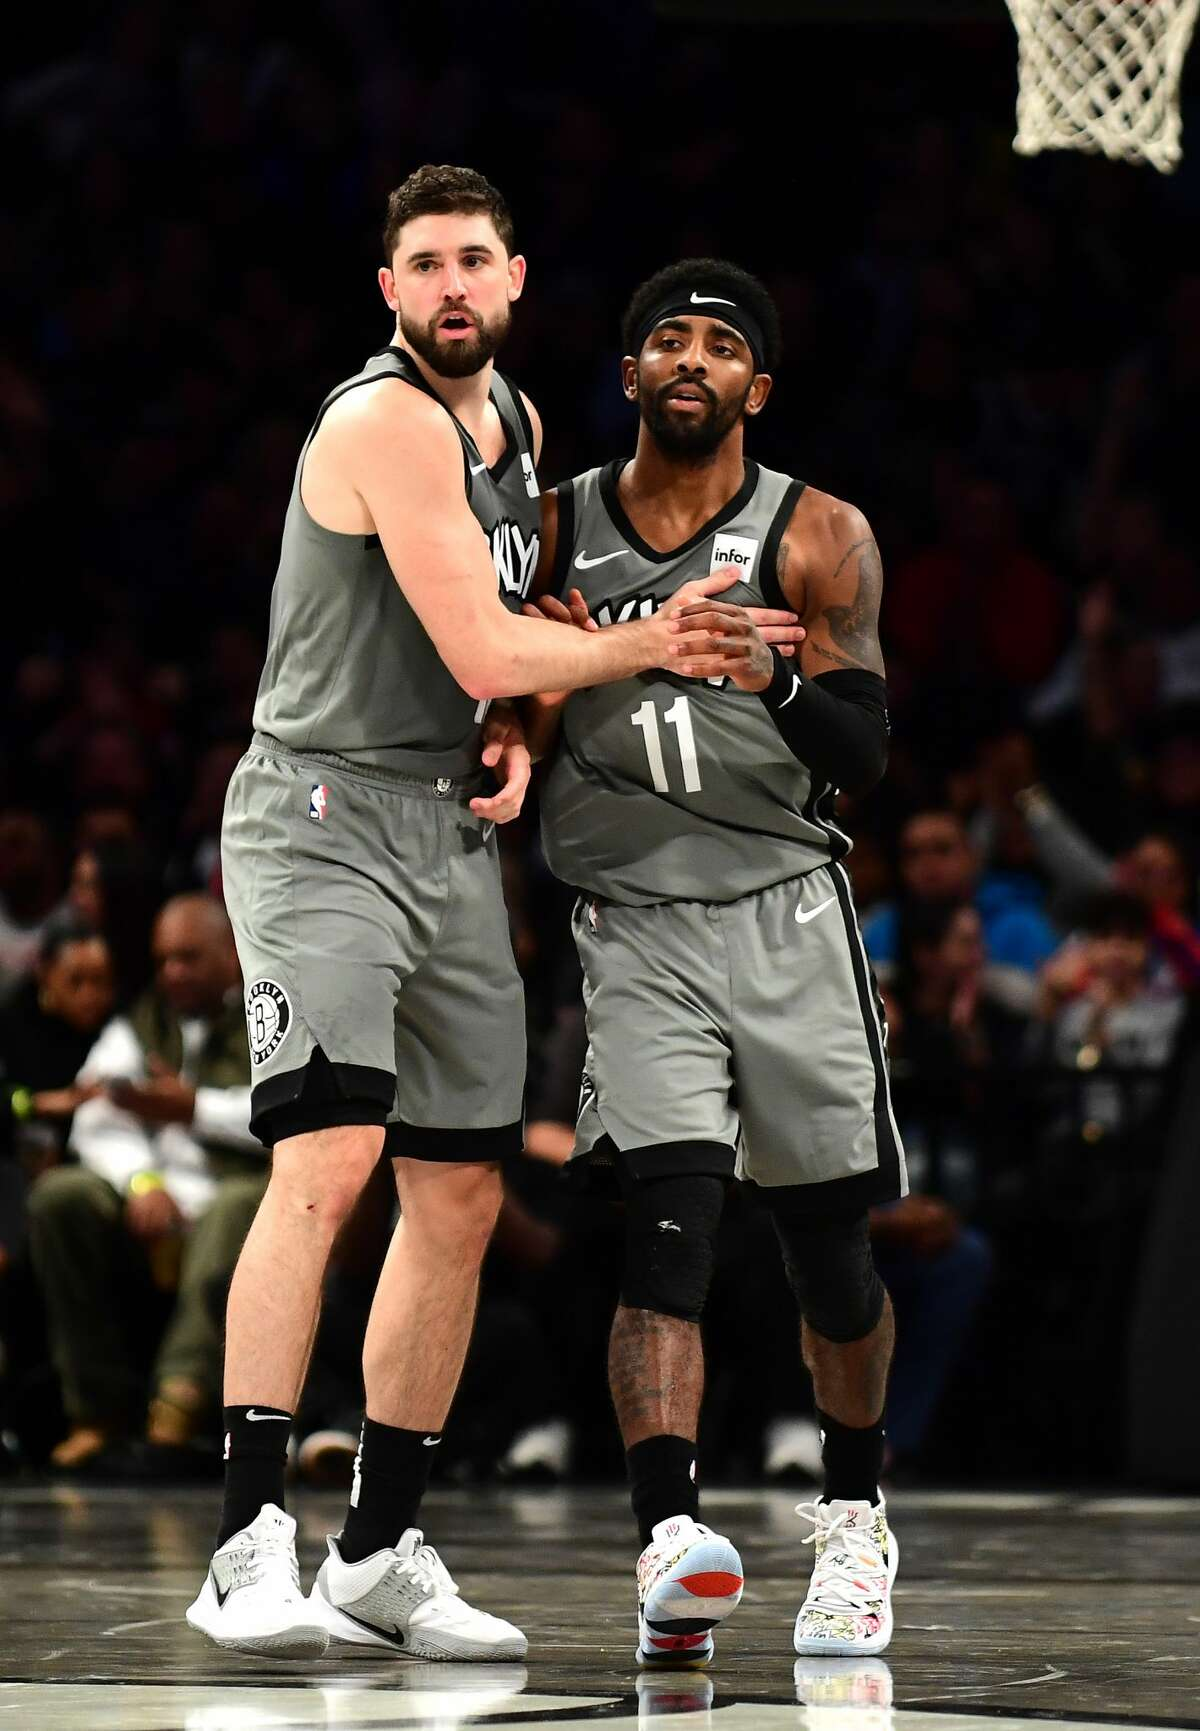 NEW YORK, NEW YORK - NOVEMBER 01: Joe Harris #12 high fives Kyrie Irving #11 of the Brooklyn Nets after a three pointer during the second half of their game against the Houston Rockets at Barclays Center on November 01, 2019 in the Brooklyn borough New York City. NOTE TO USER: User expressly acknowledges and agrees that, by downloading and or using this Photograph, user is consenting to the terms and conditions of the Getty Images License Agreement. (Photo by Emilee Chinn/Getty Images)